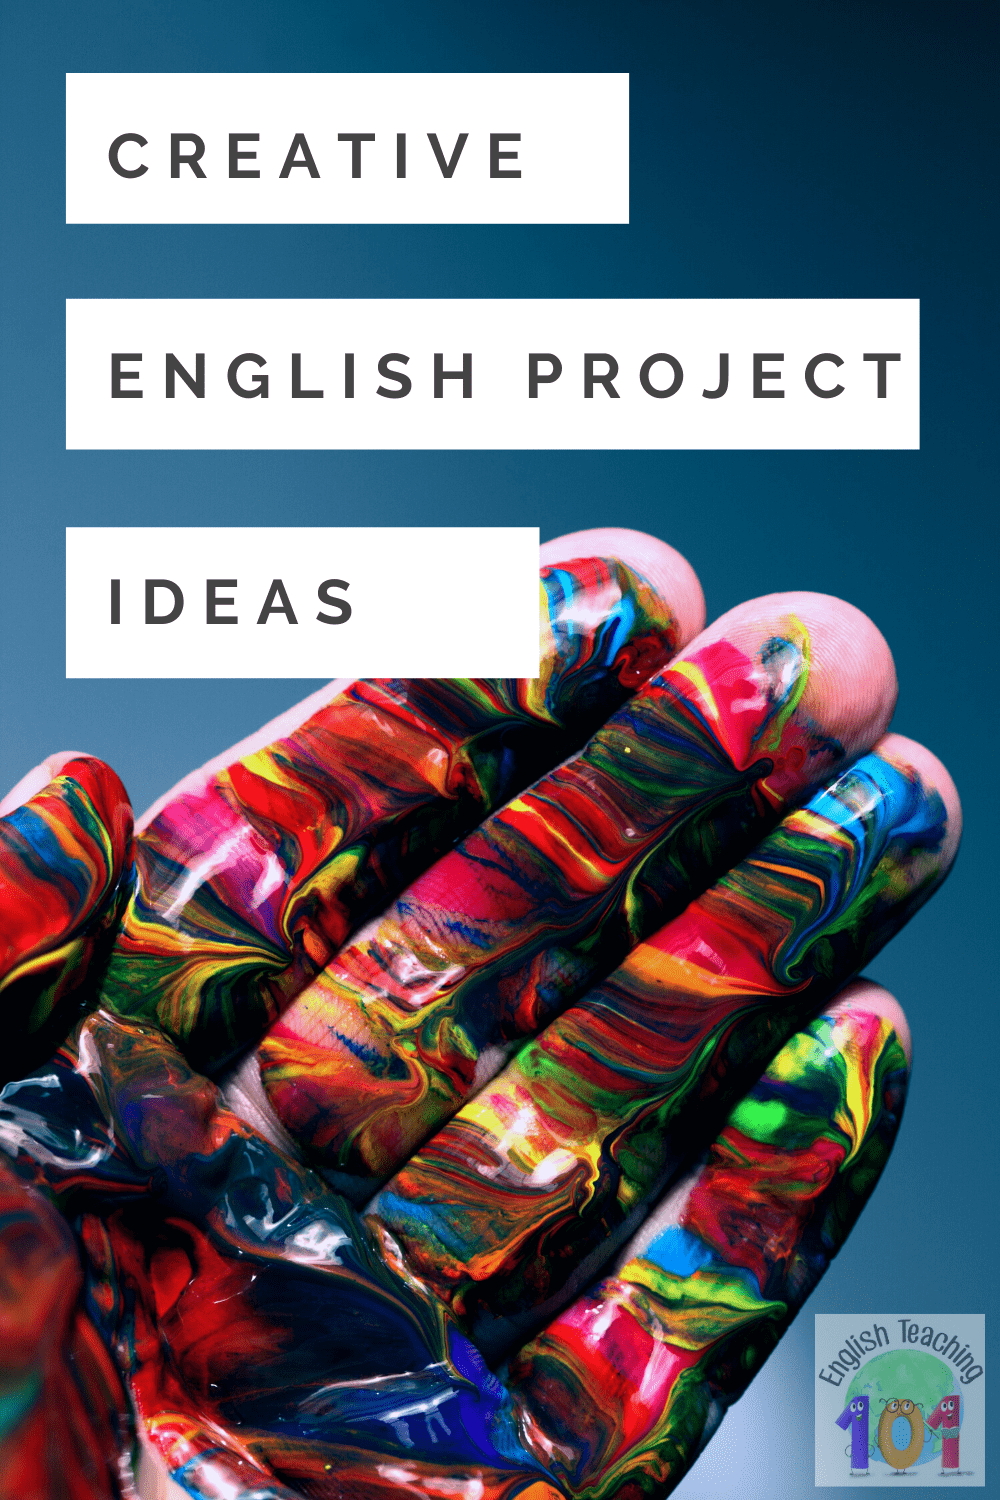 creative English project ideas for middle school and high school